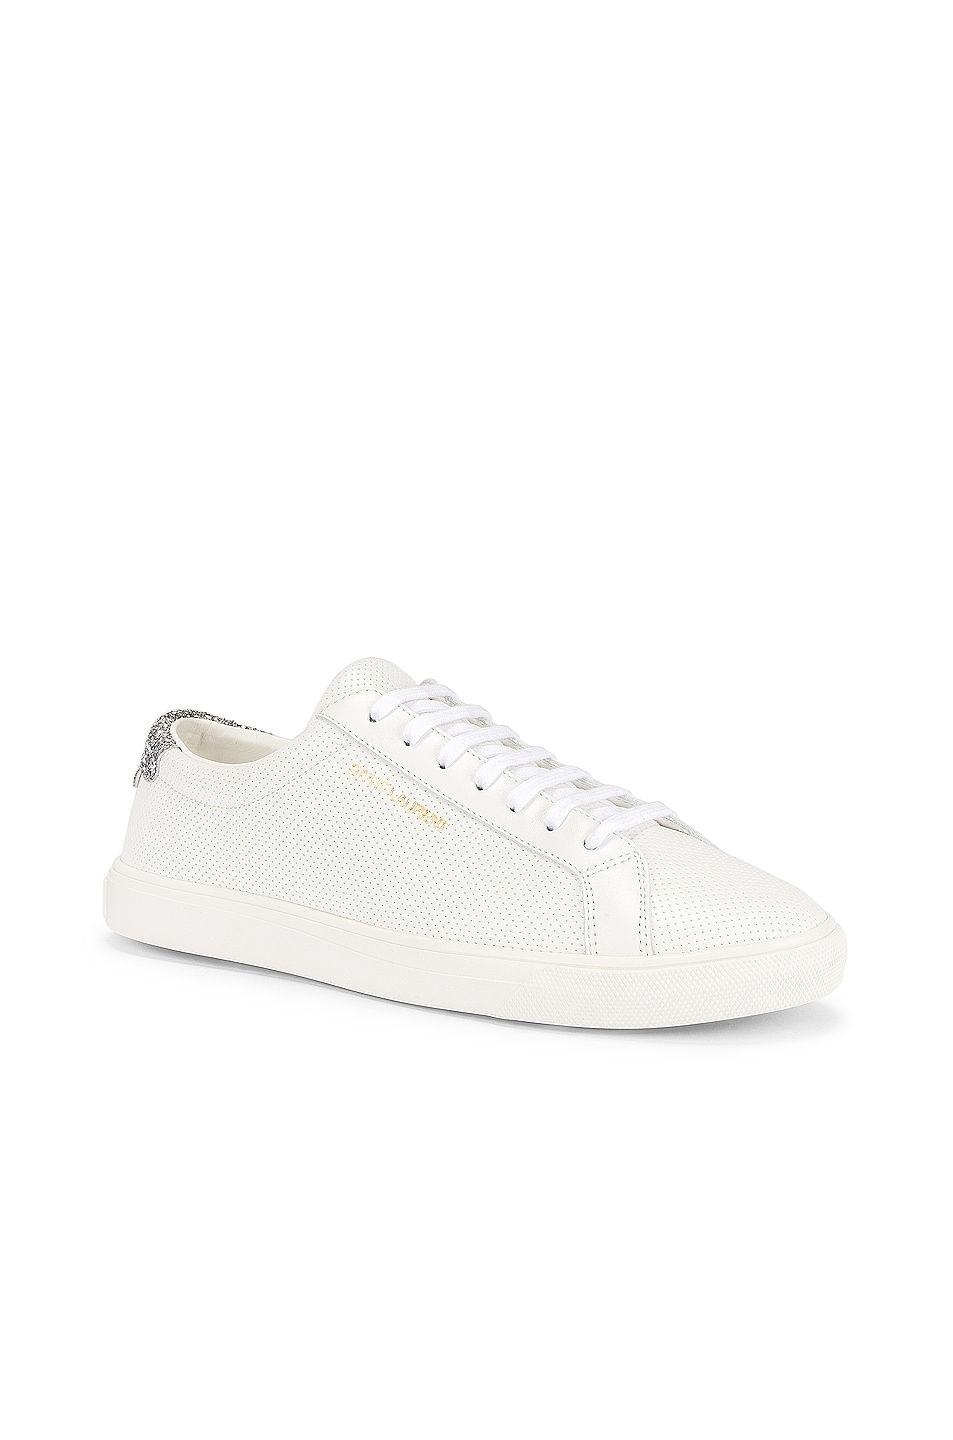 Image 2 of Saint Laurent Andy Low Top Glitter Sneaker in White & Silver